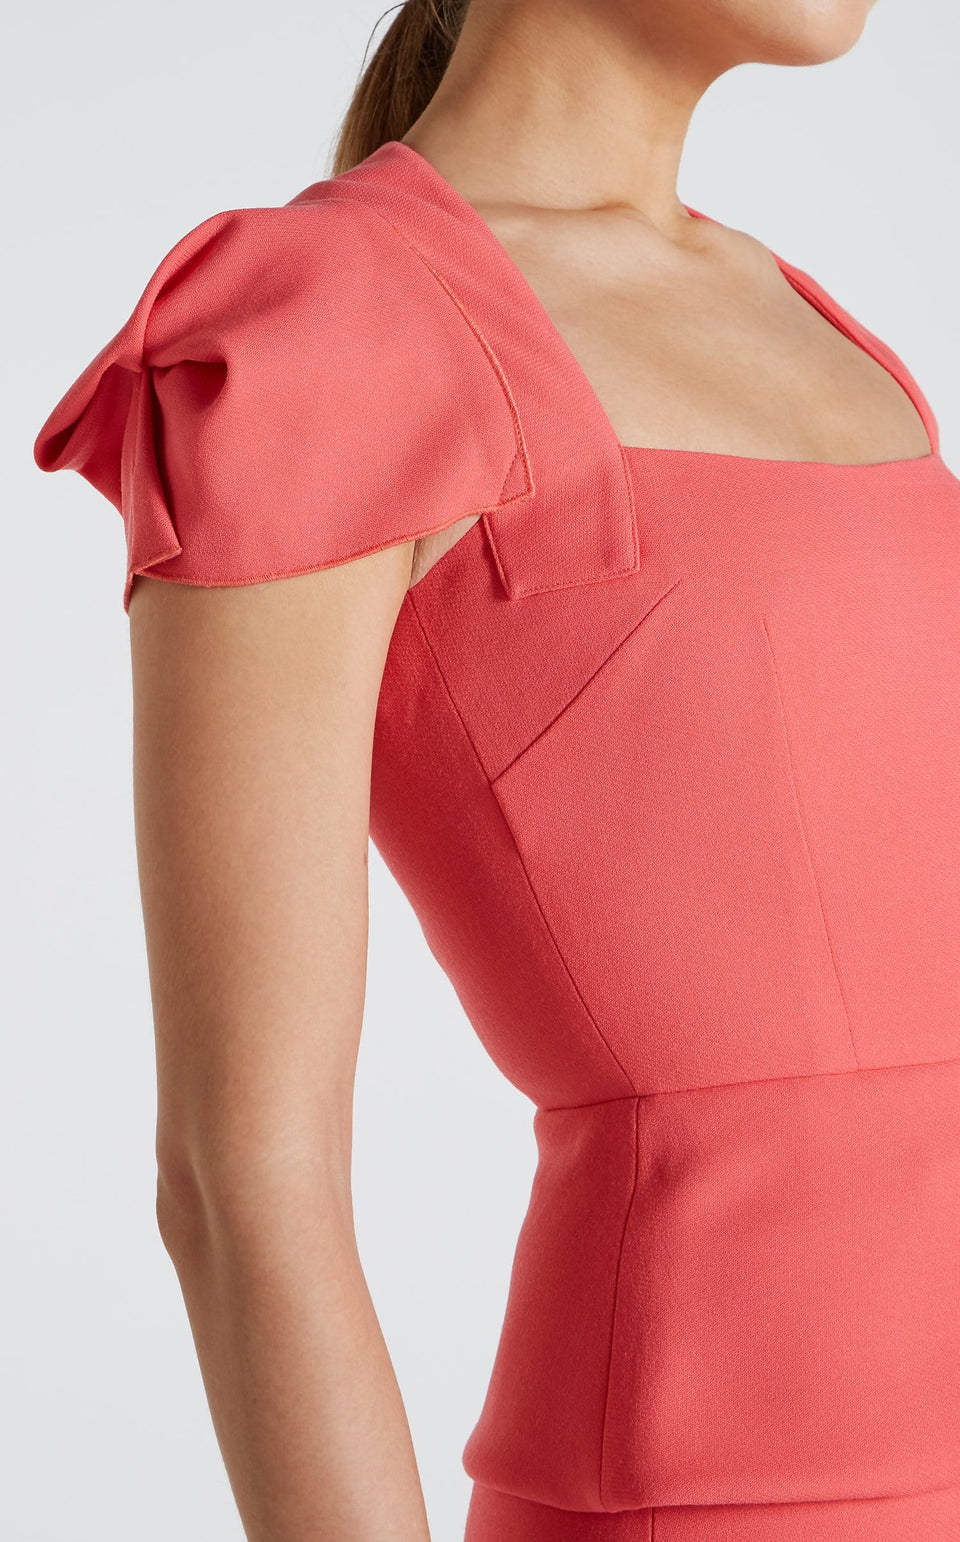 Galaxy Top In Rose Pink from Roland Mouret